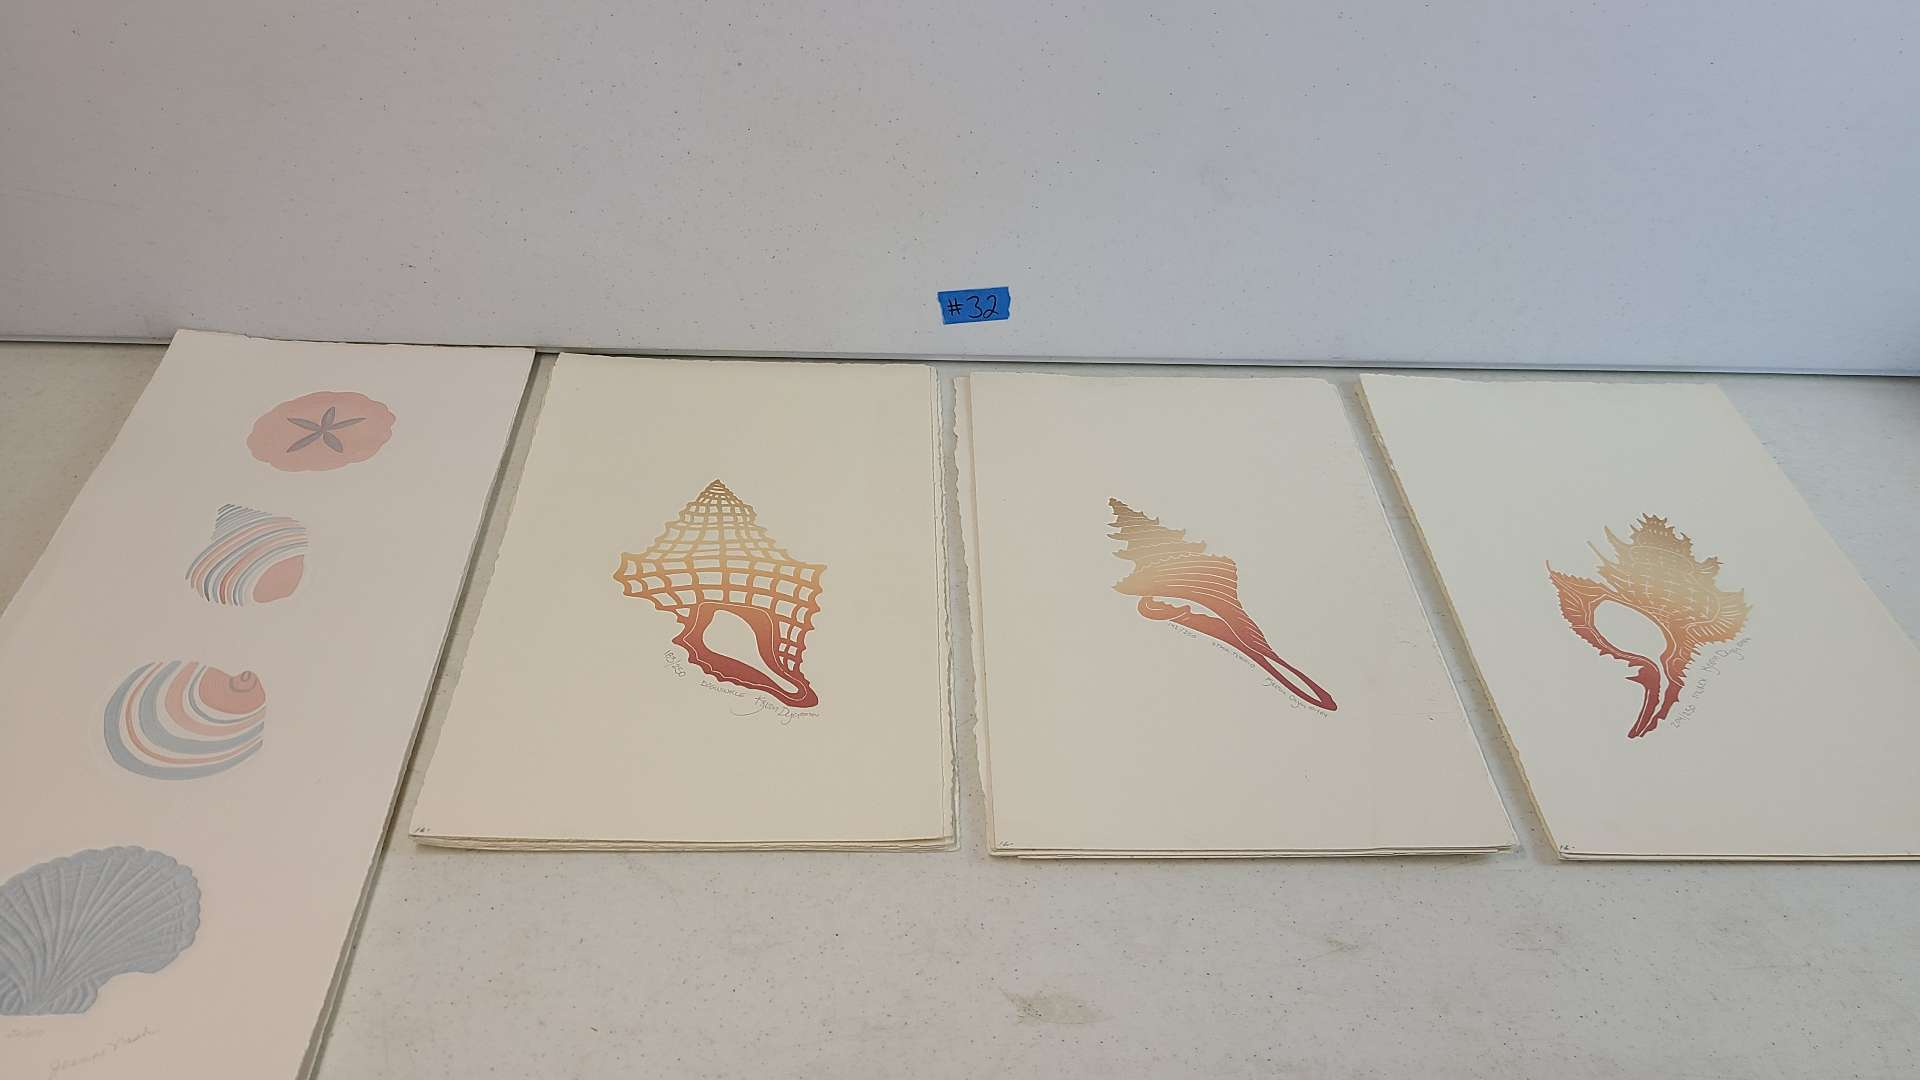 Lot # 32 Lot of 4 Signed & Numbered Lithographs